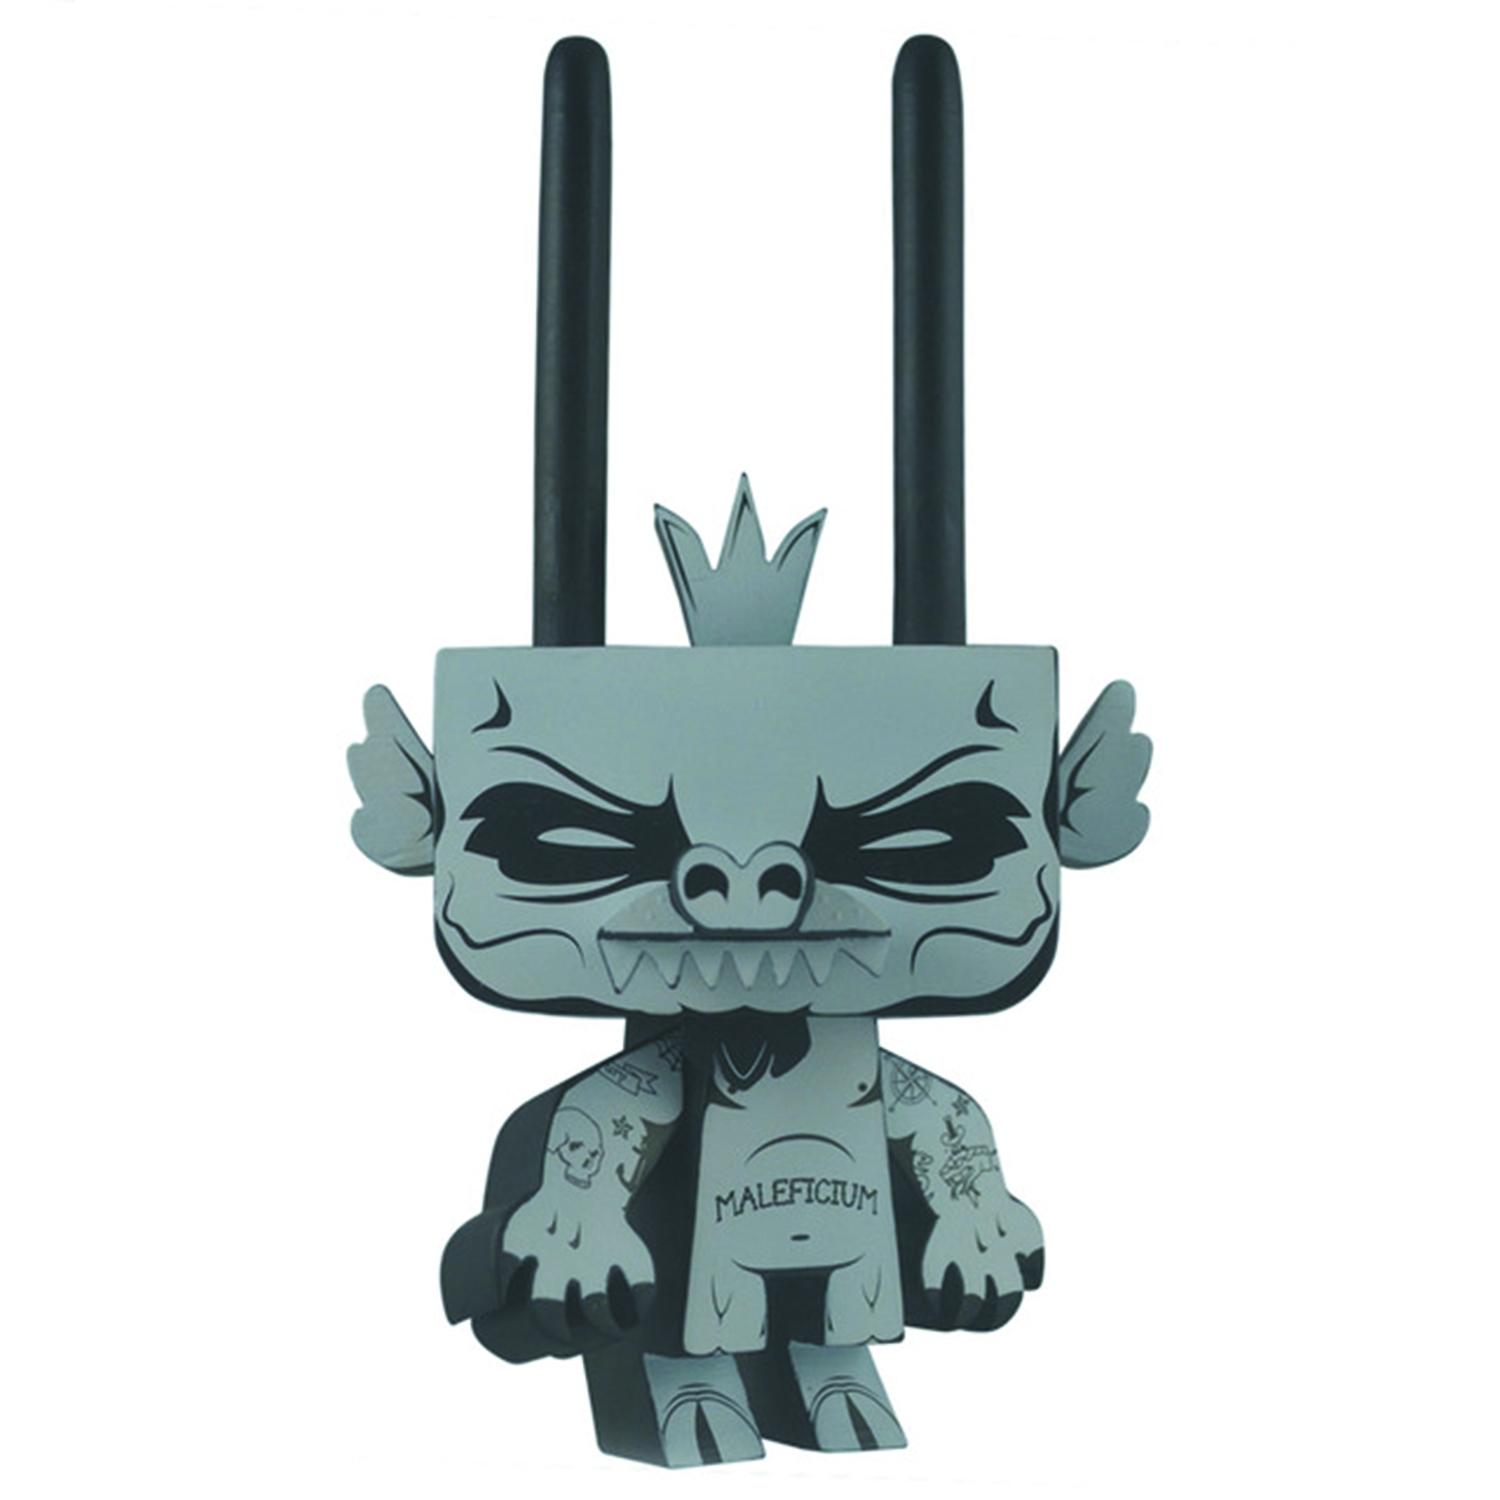 SYLVAN KING OF MISCHIEF 9IN VINYL FIGURE